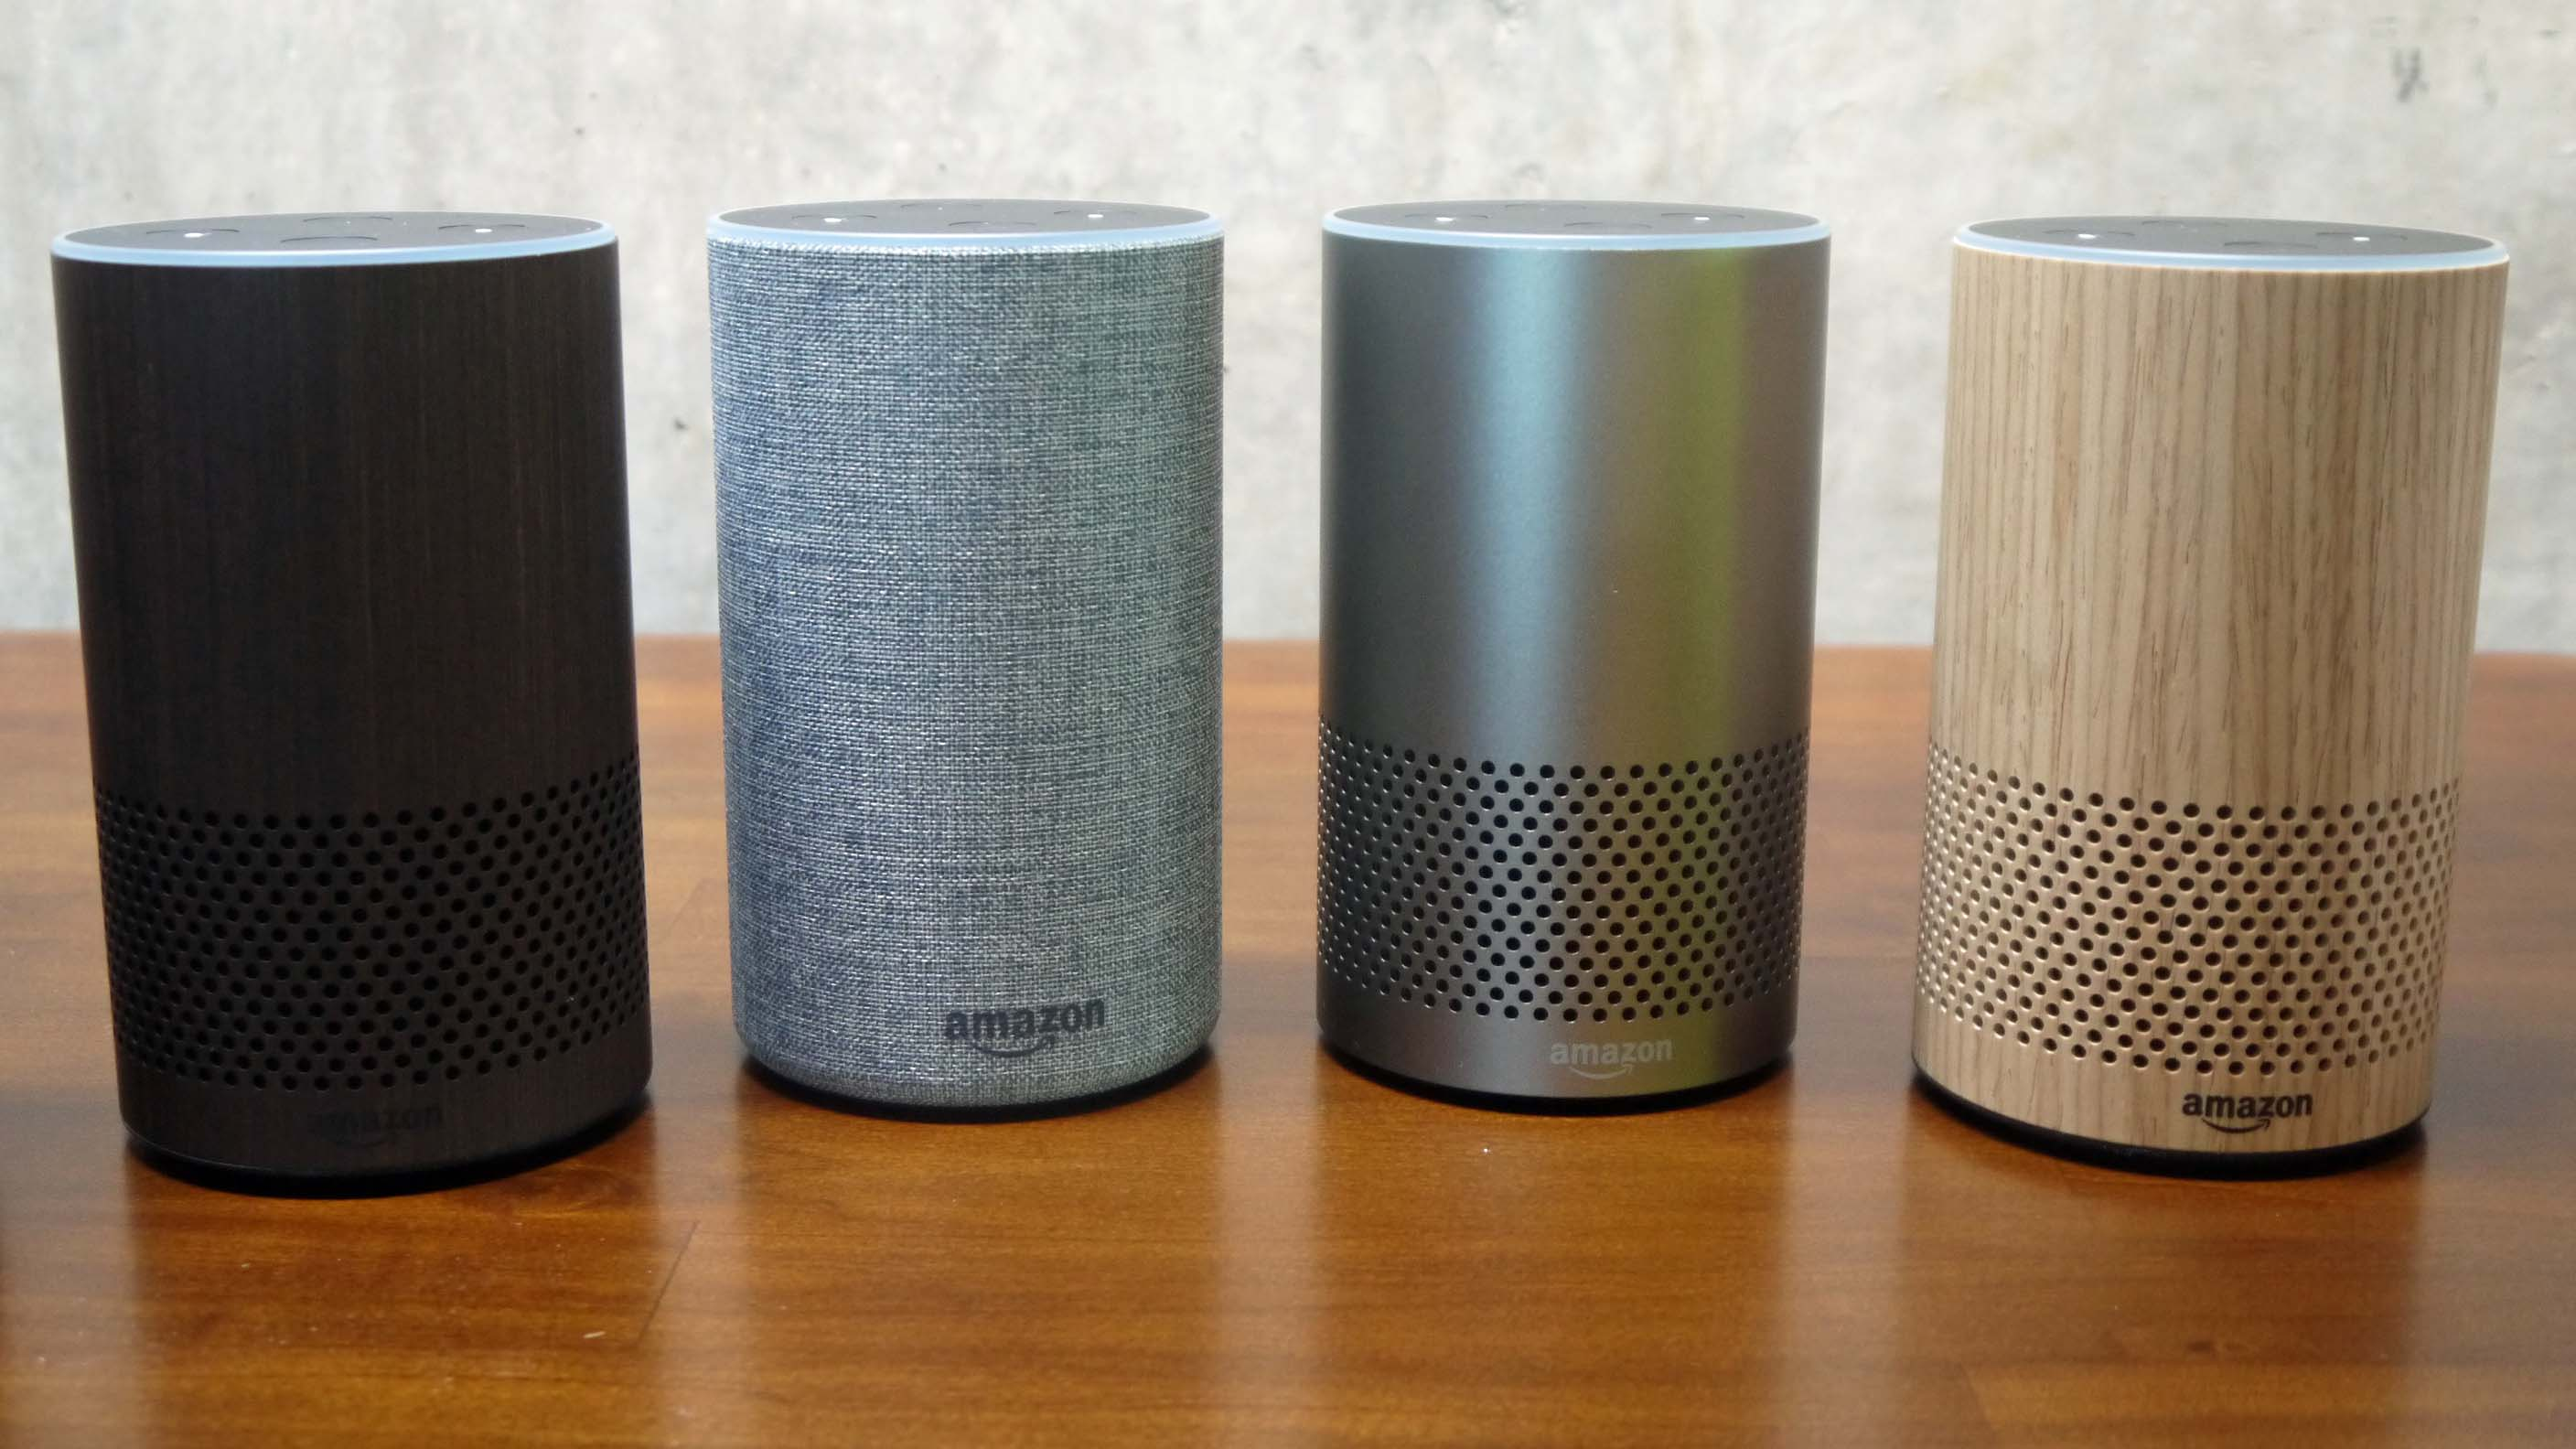 The new Amazon Echo is available with a number of different finishes.